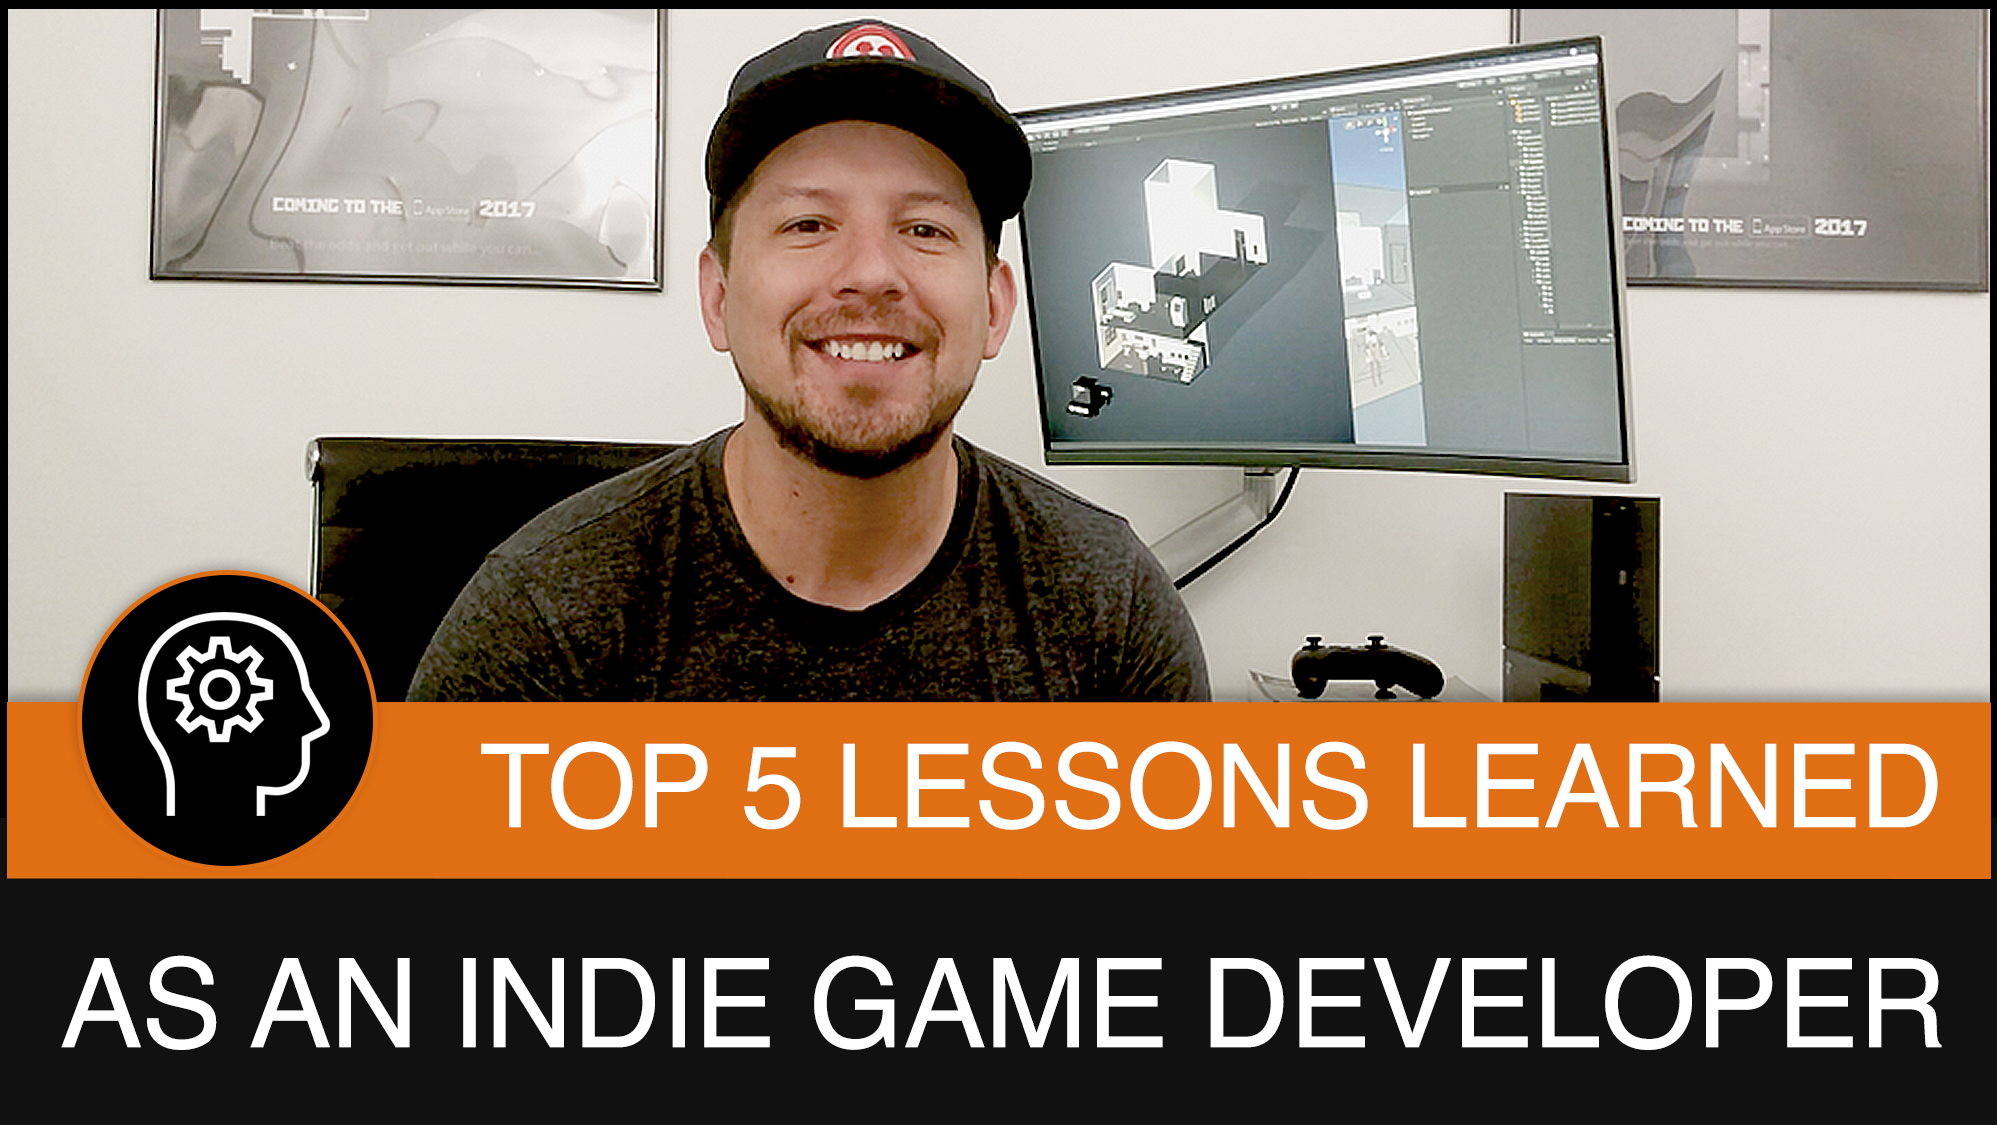 Top 5 lessons learned as an indie game developer